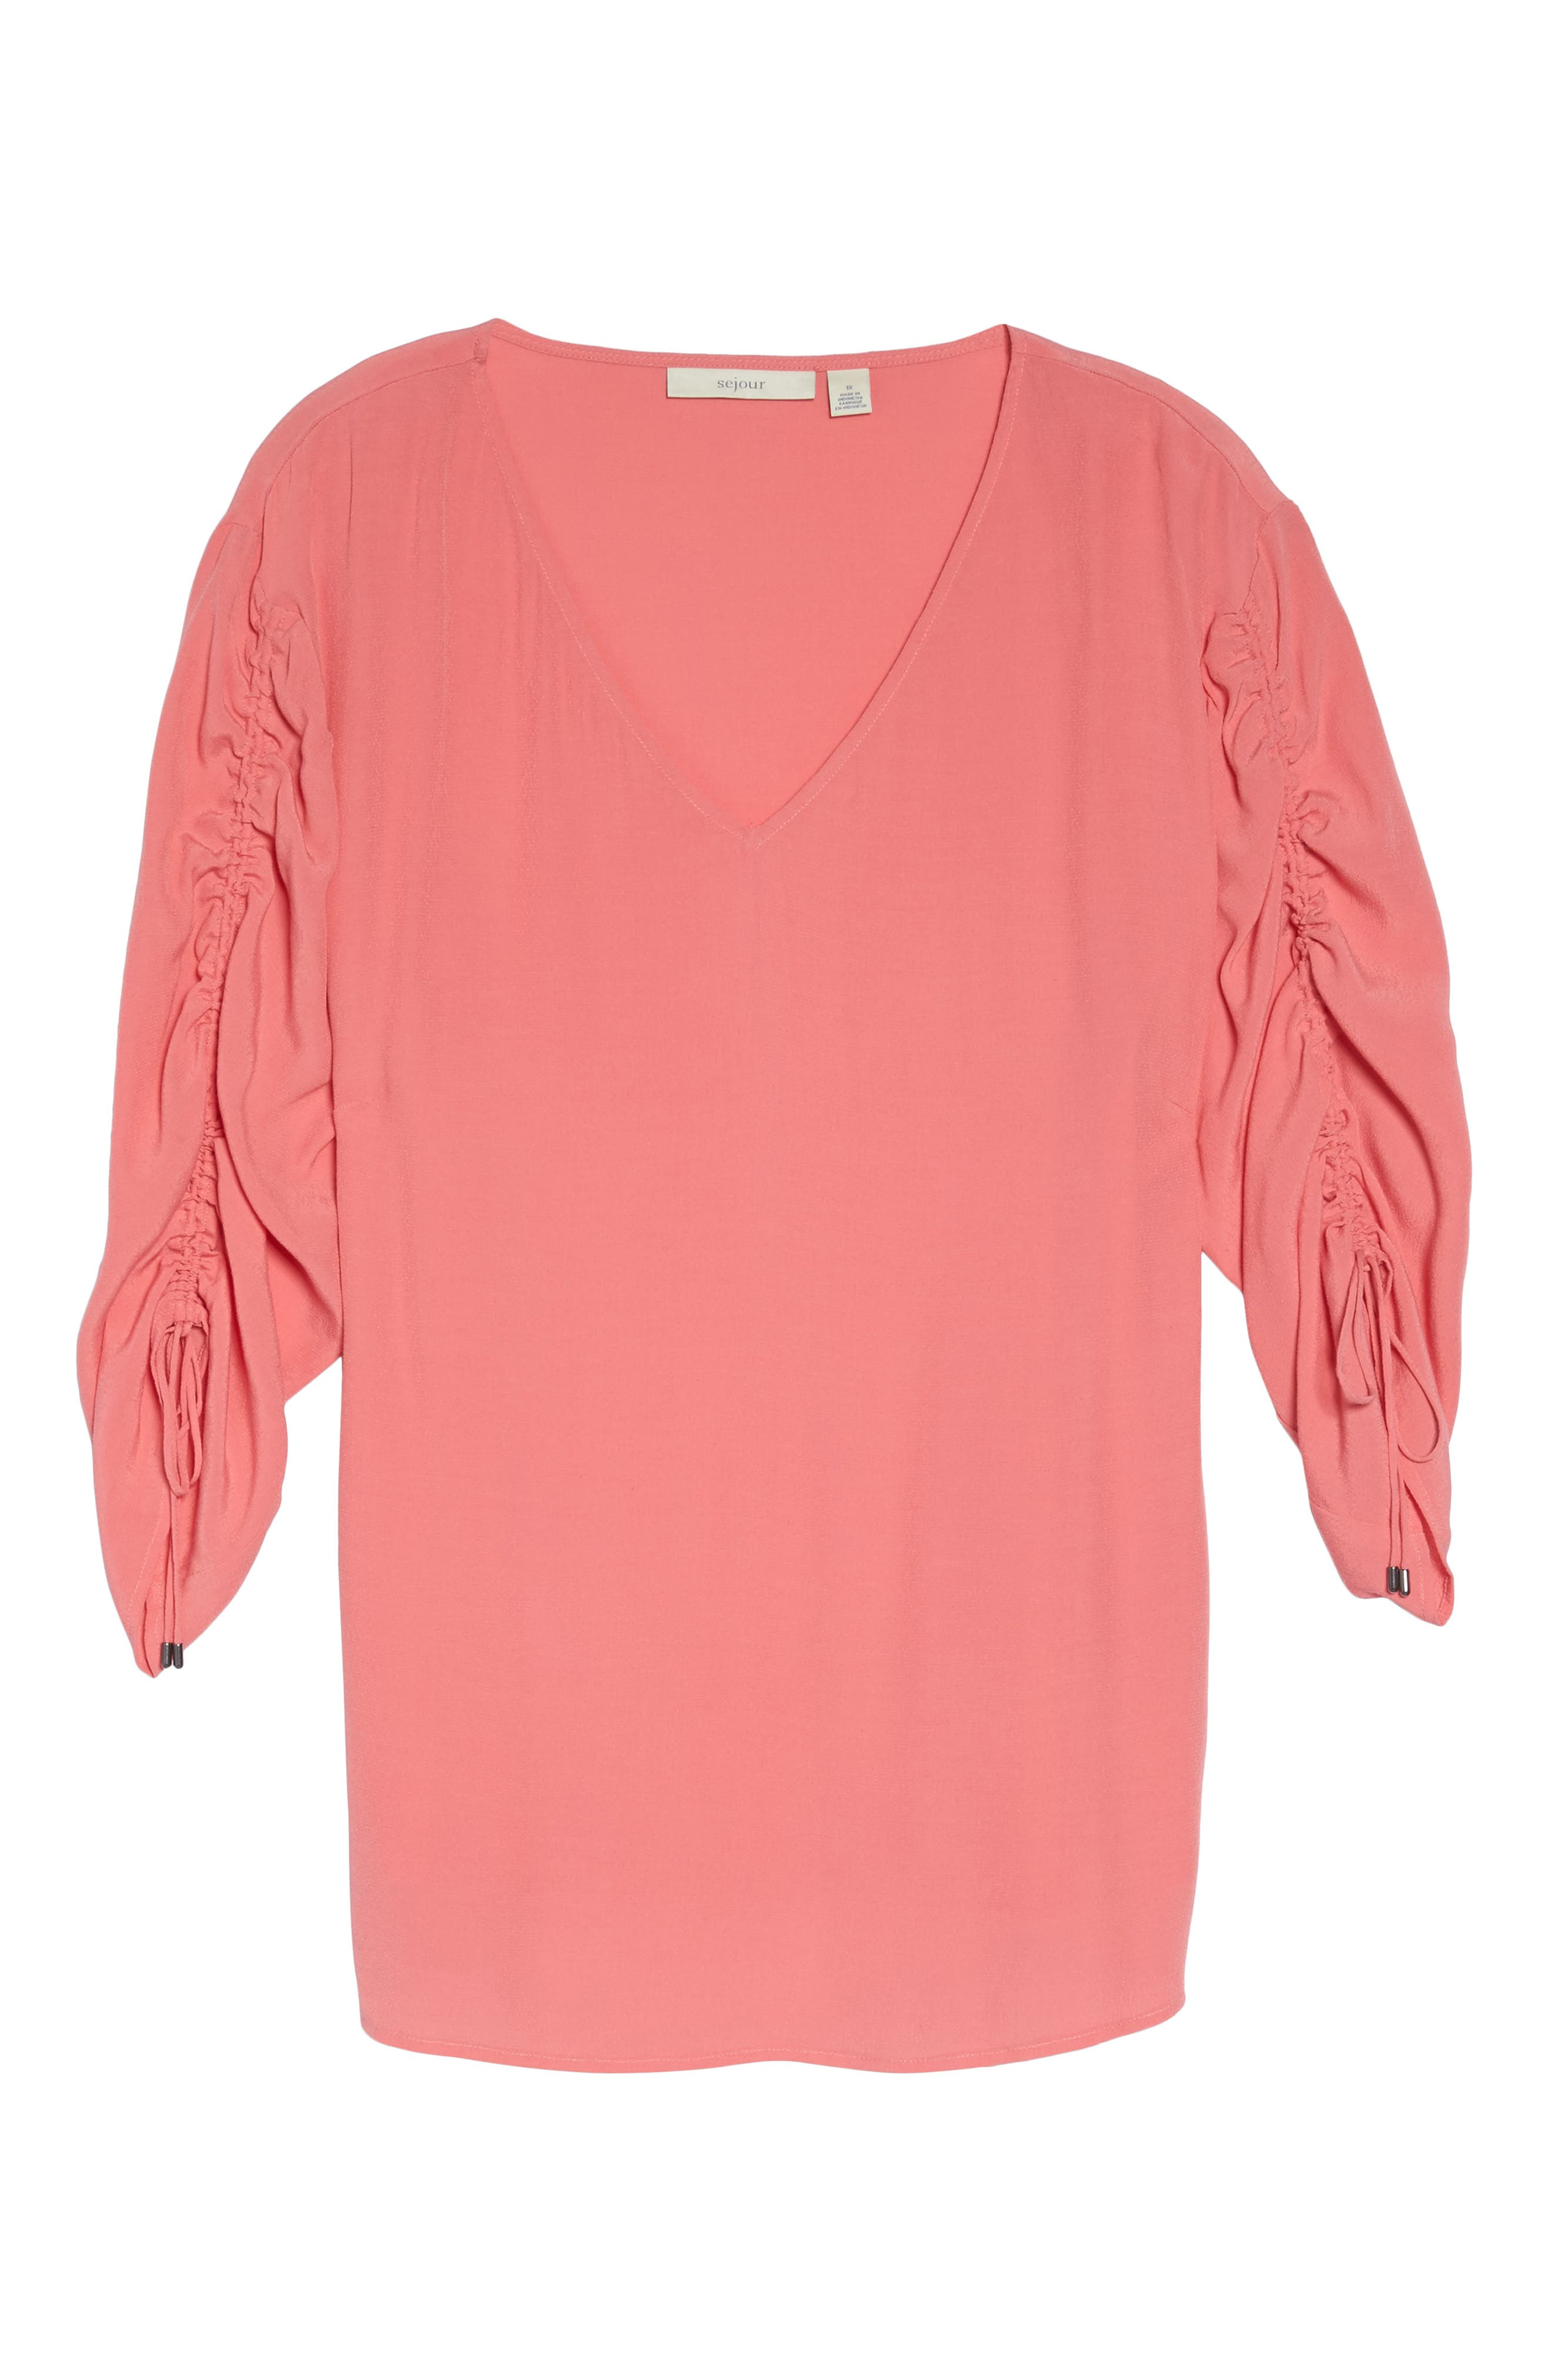 Cinched Sleeve Top,                             Alternate thumbnail 18, color,